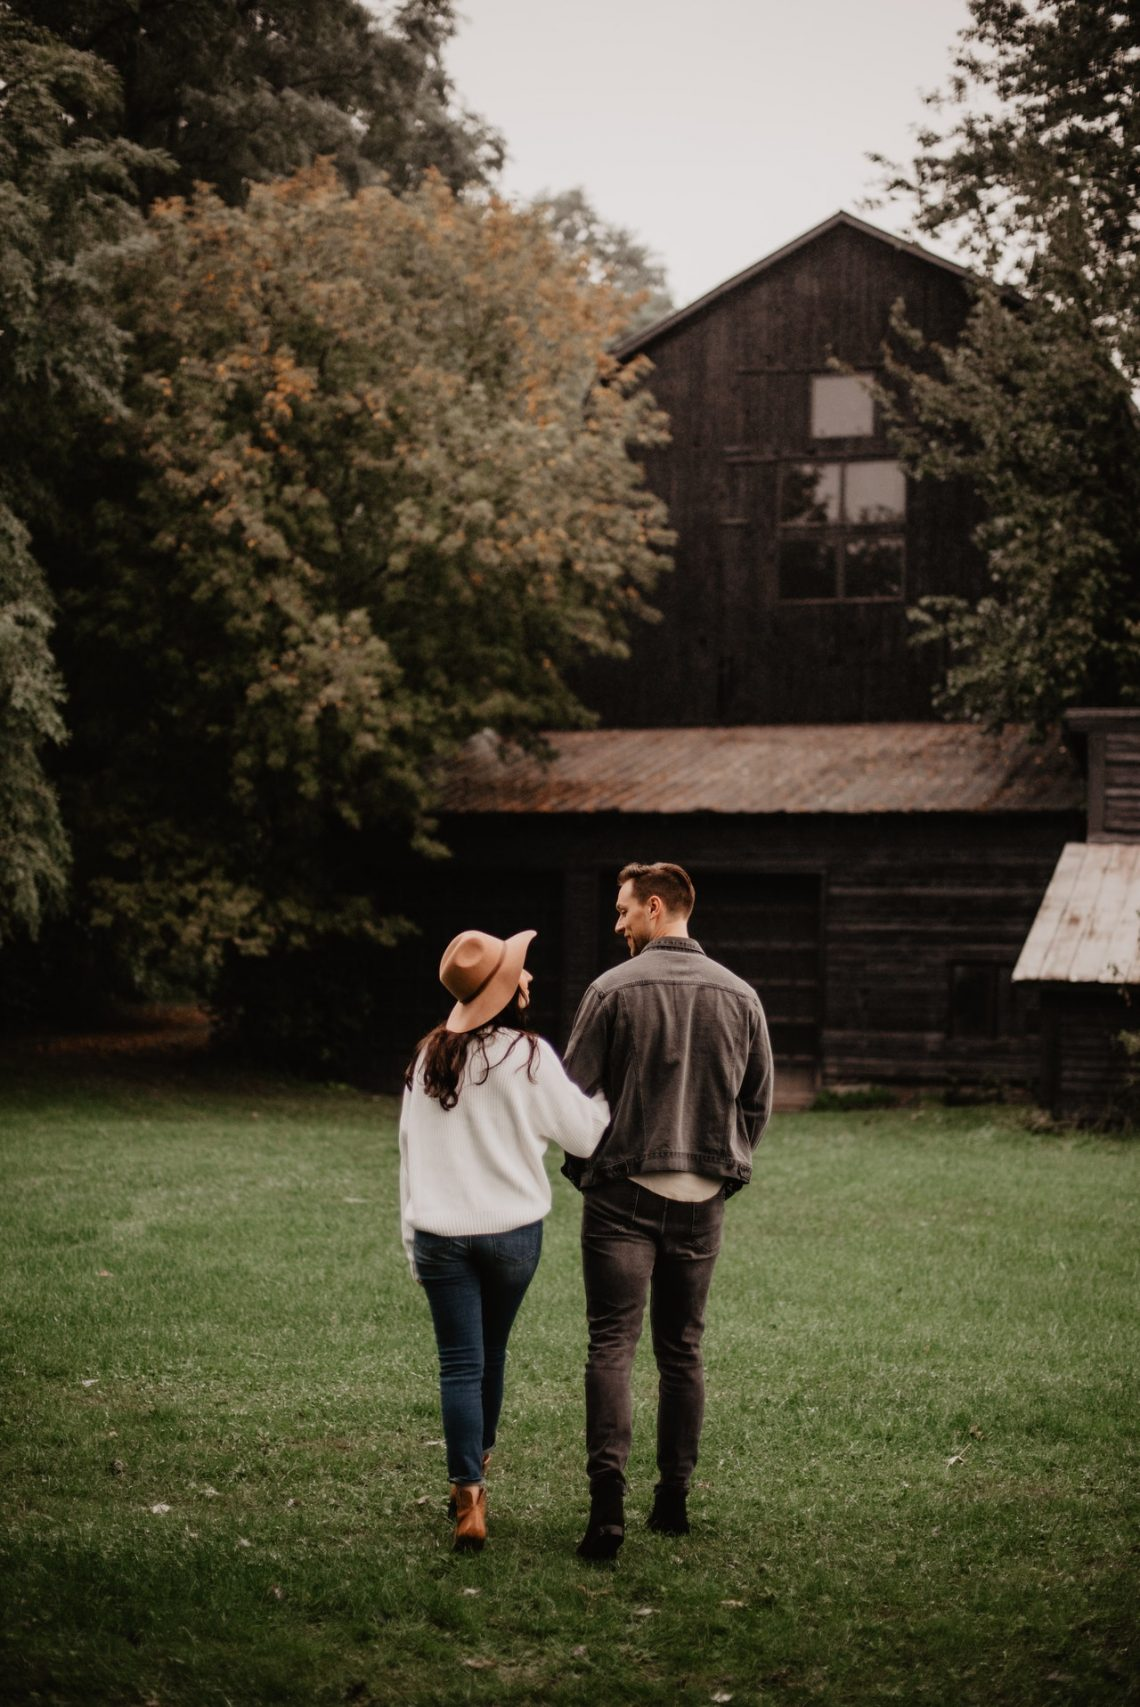 Best Romantic Fall Date Ideas to Make the Most of the Season